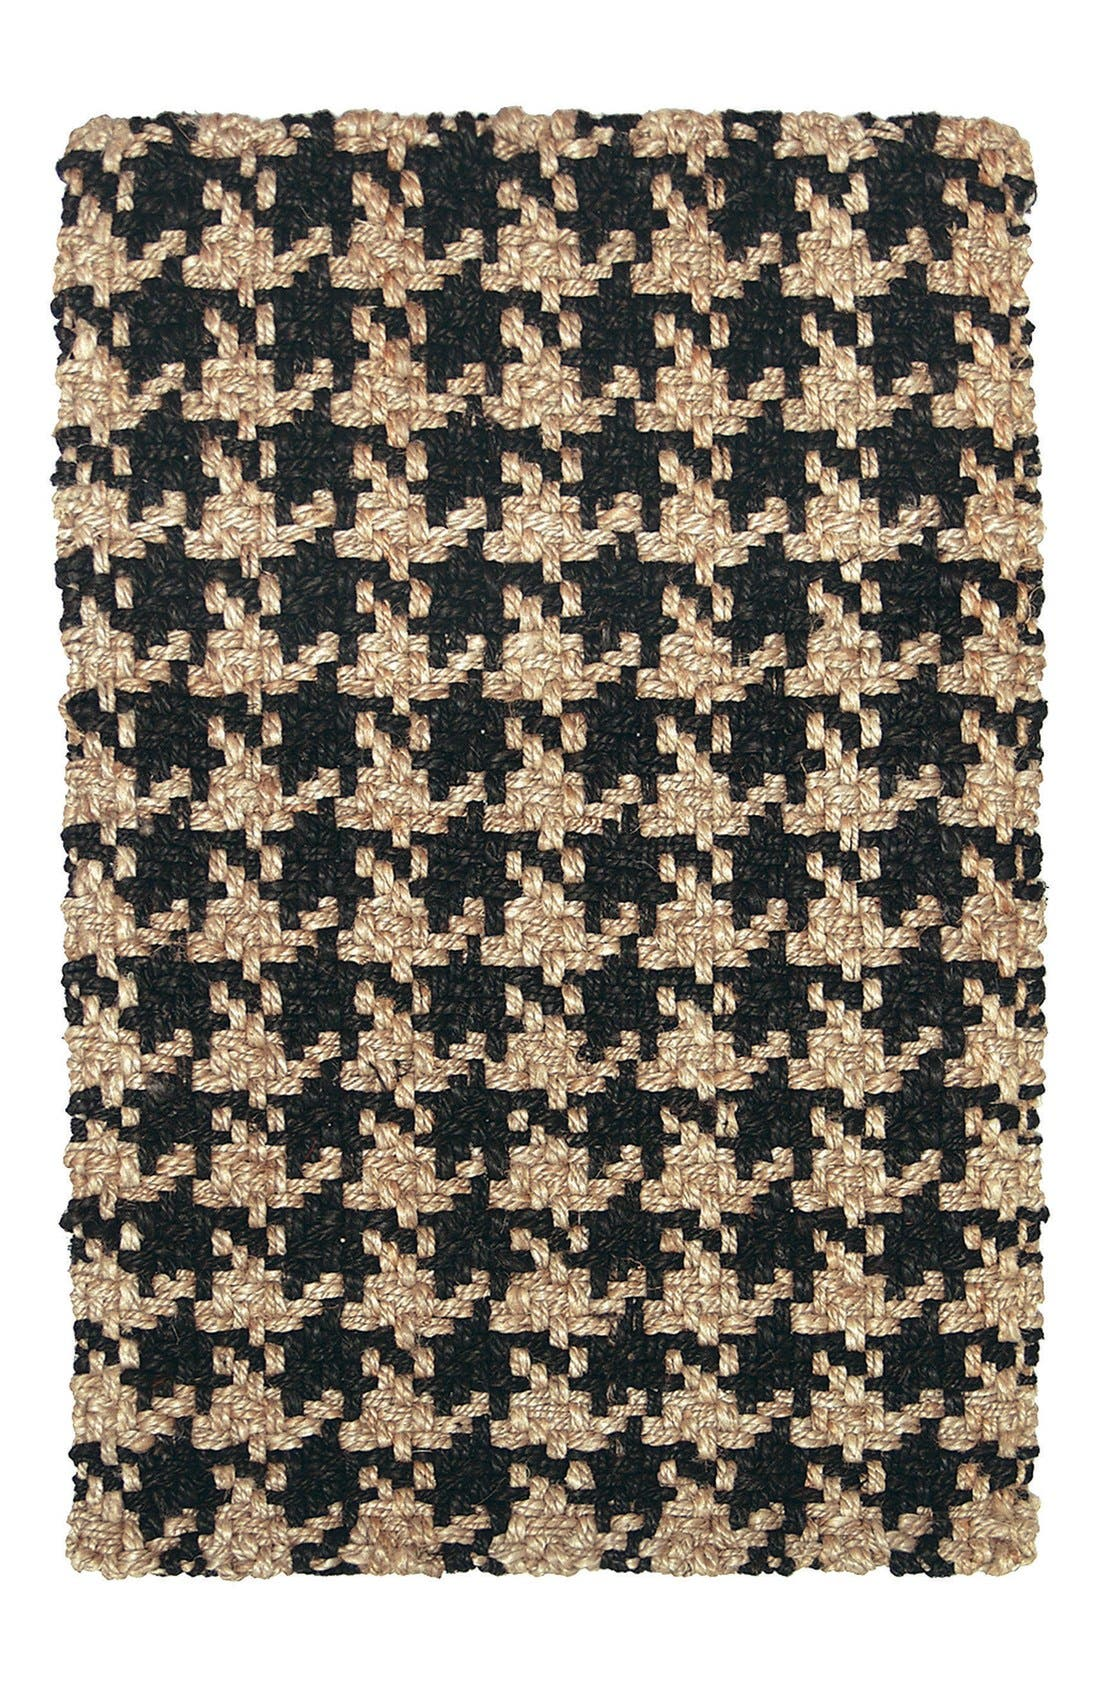 Houndstooth Rug,                         Main,                         color, 001